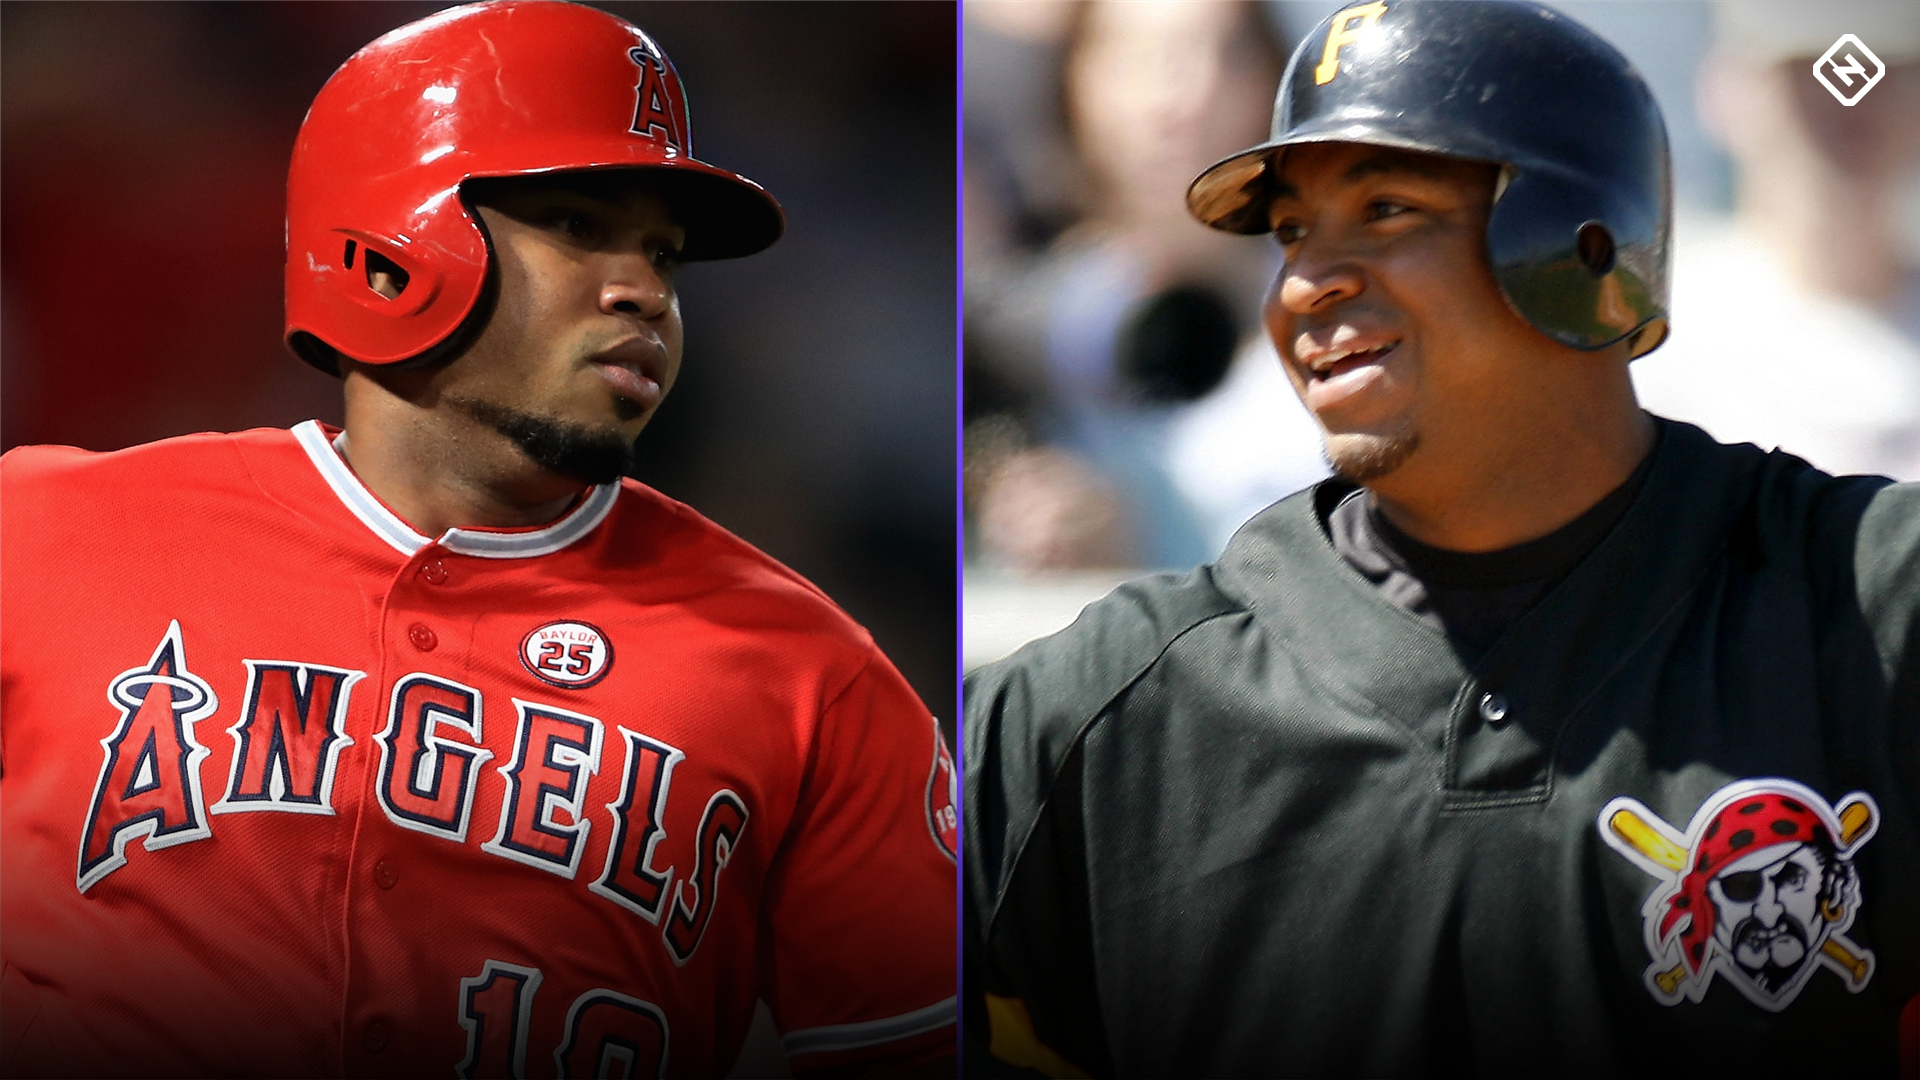 Ex-MLB players Luis Valbuena, Jose Castillo die in Venezuela car crash